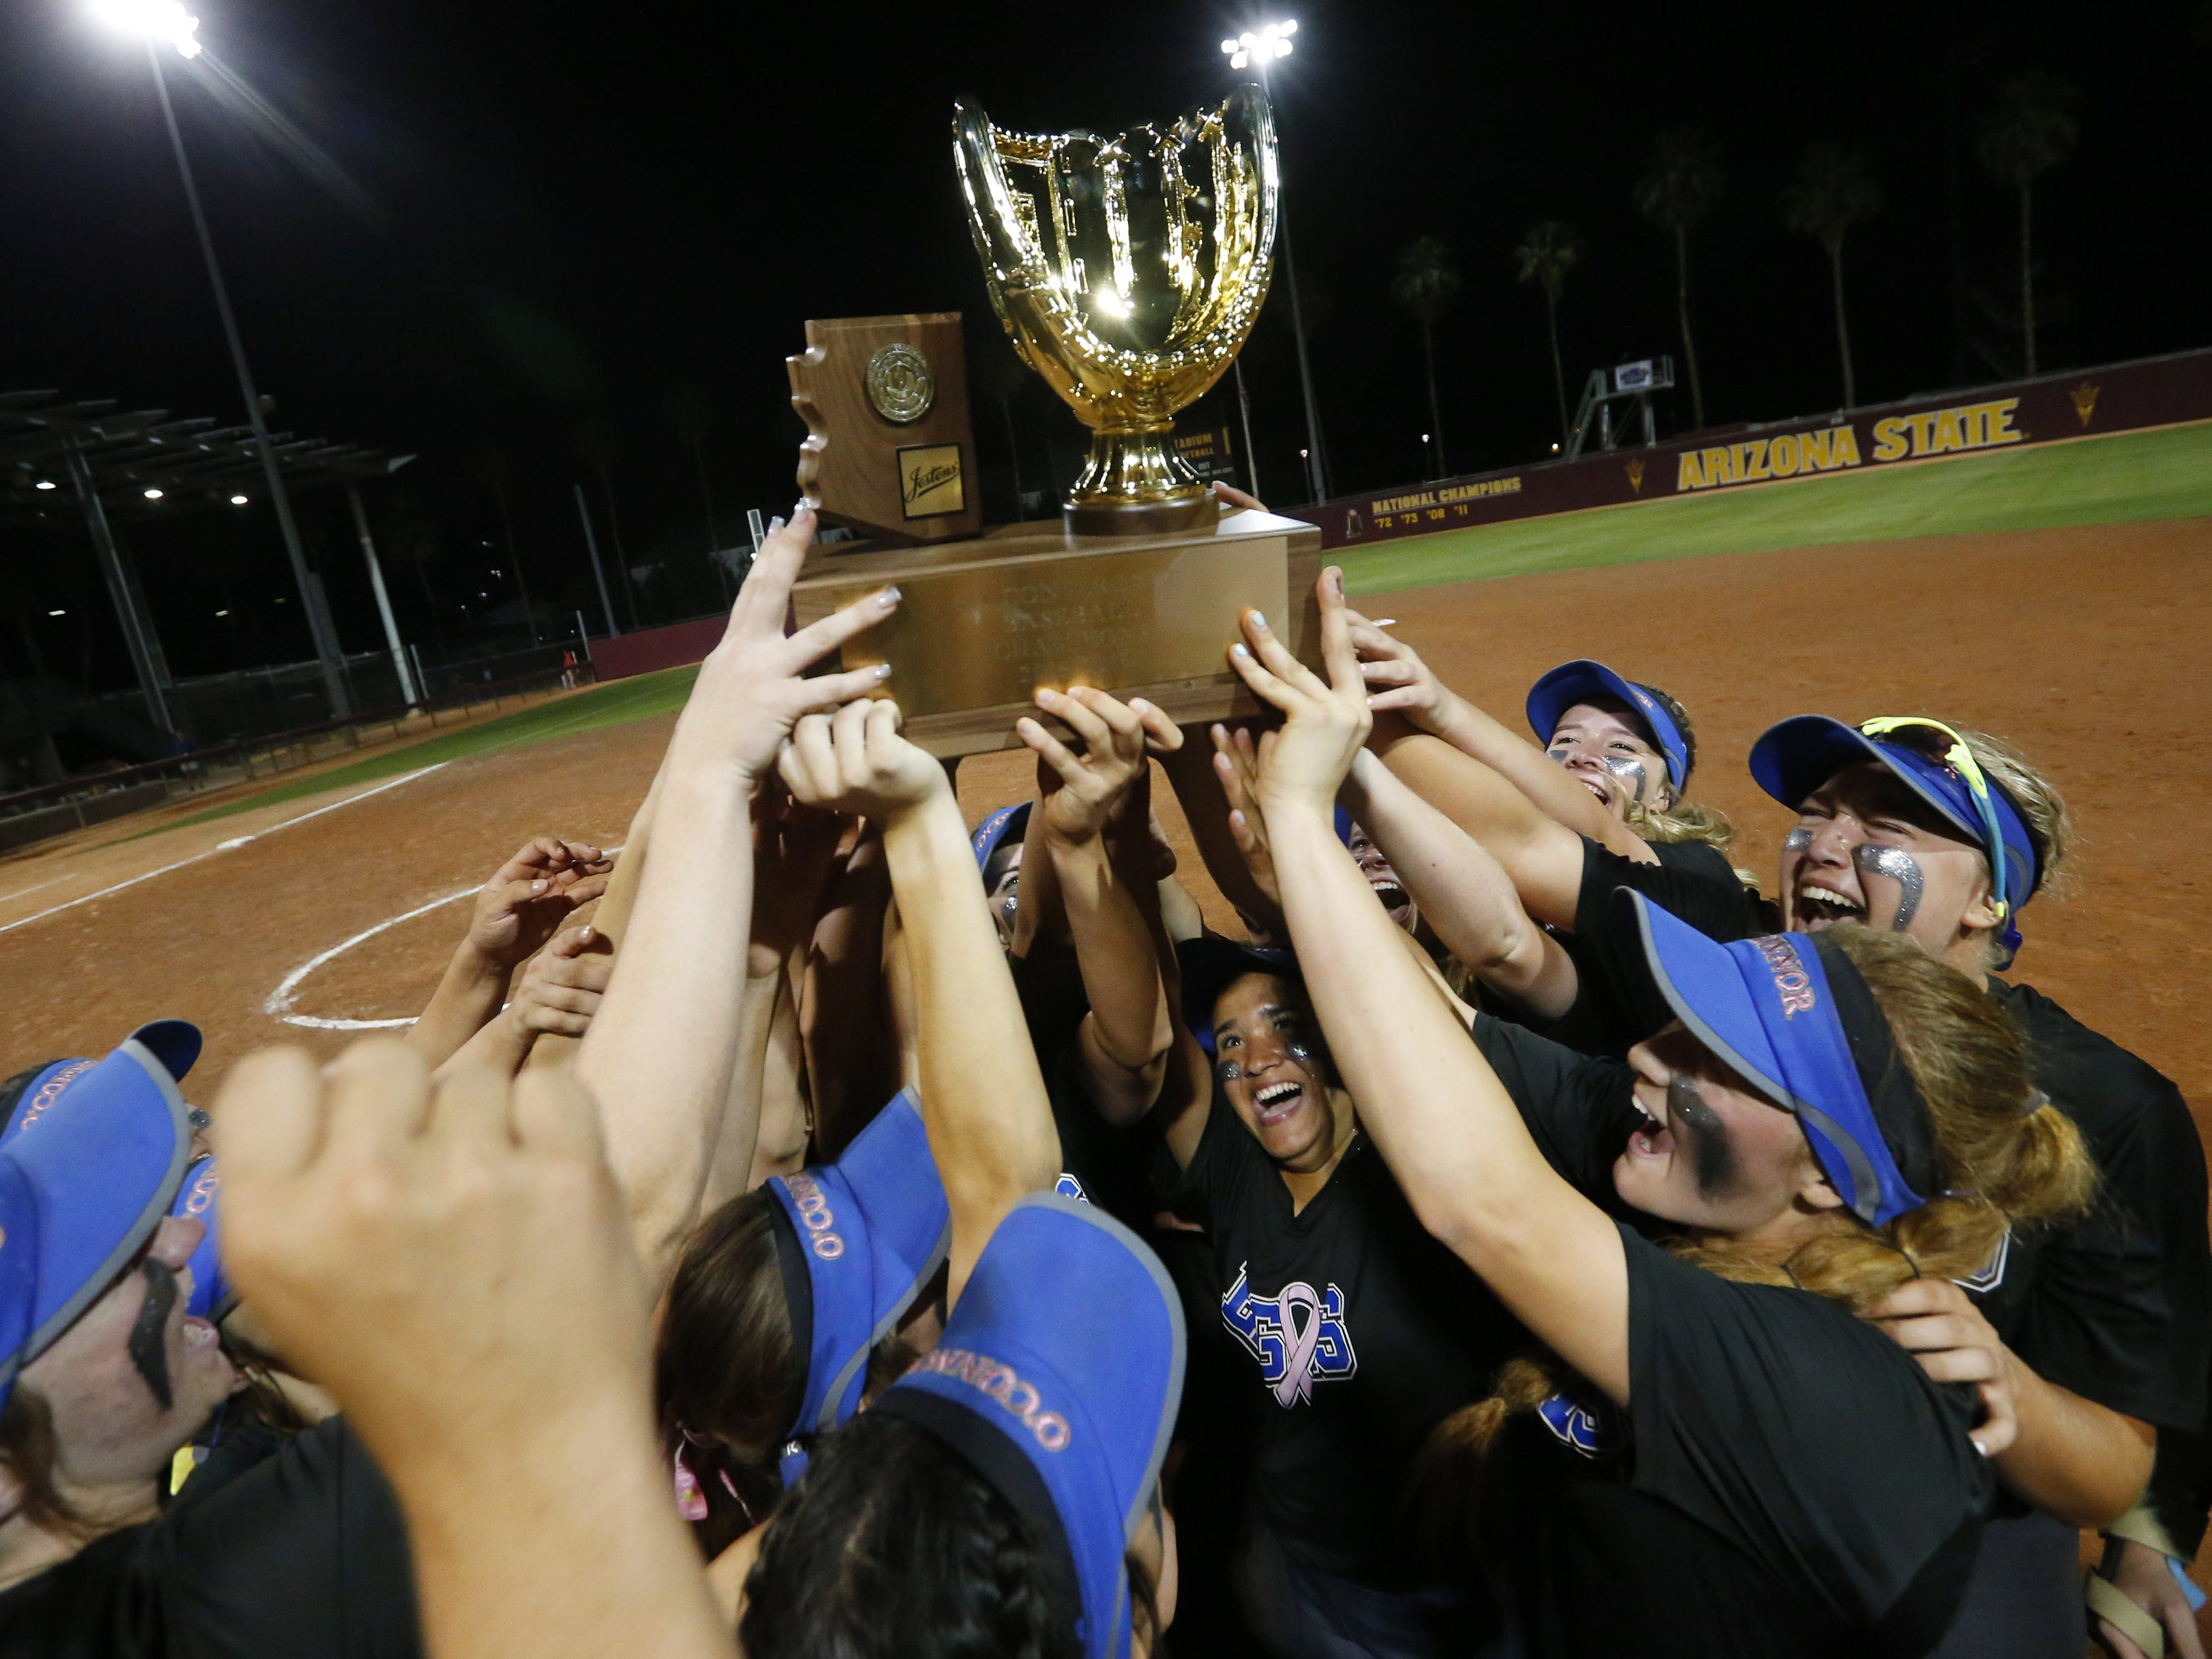 Sandra Day O'Connor players celebrate after beating Pinnacle 6-4, winning the 6A State Softball Championship in Tempe, Ariz. May 13, 2019.